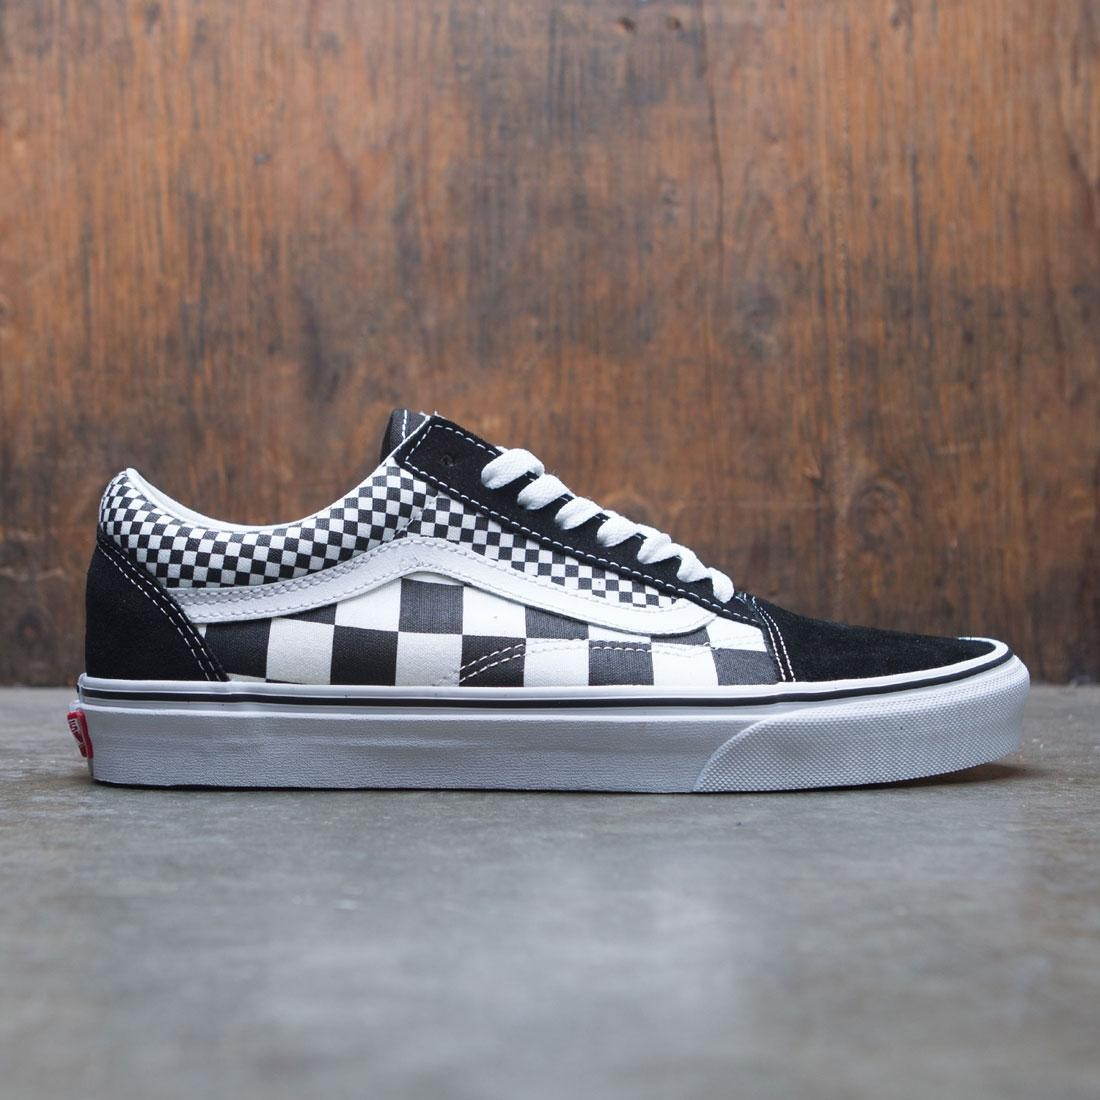 ddb854b18f17 Vans Men Old Skool - Mixed Checkerboard black checkerboard